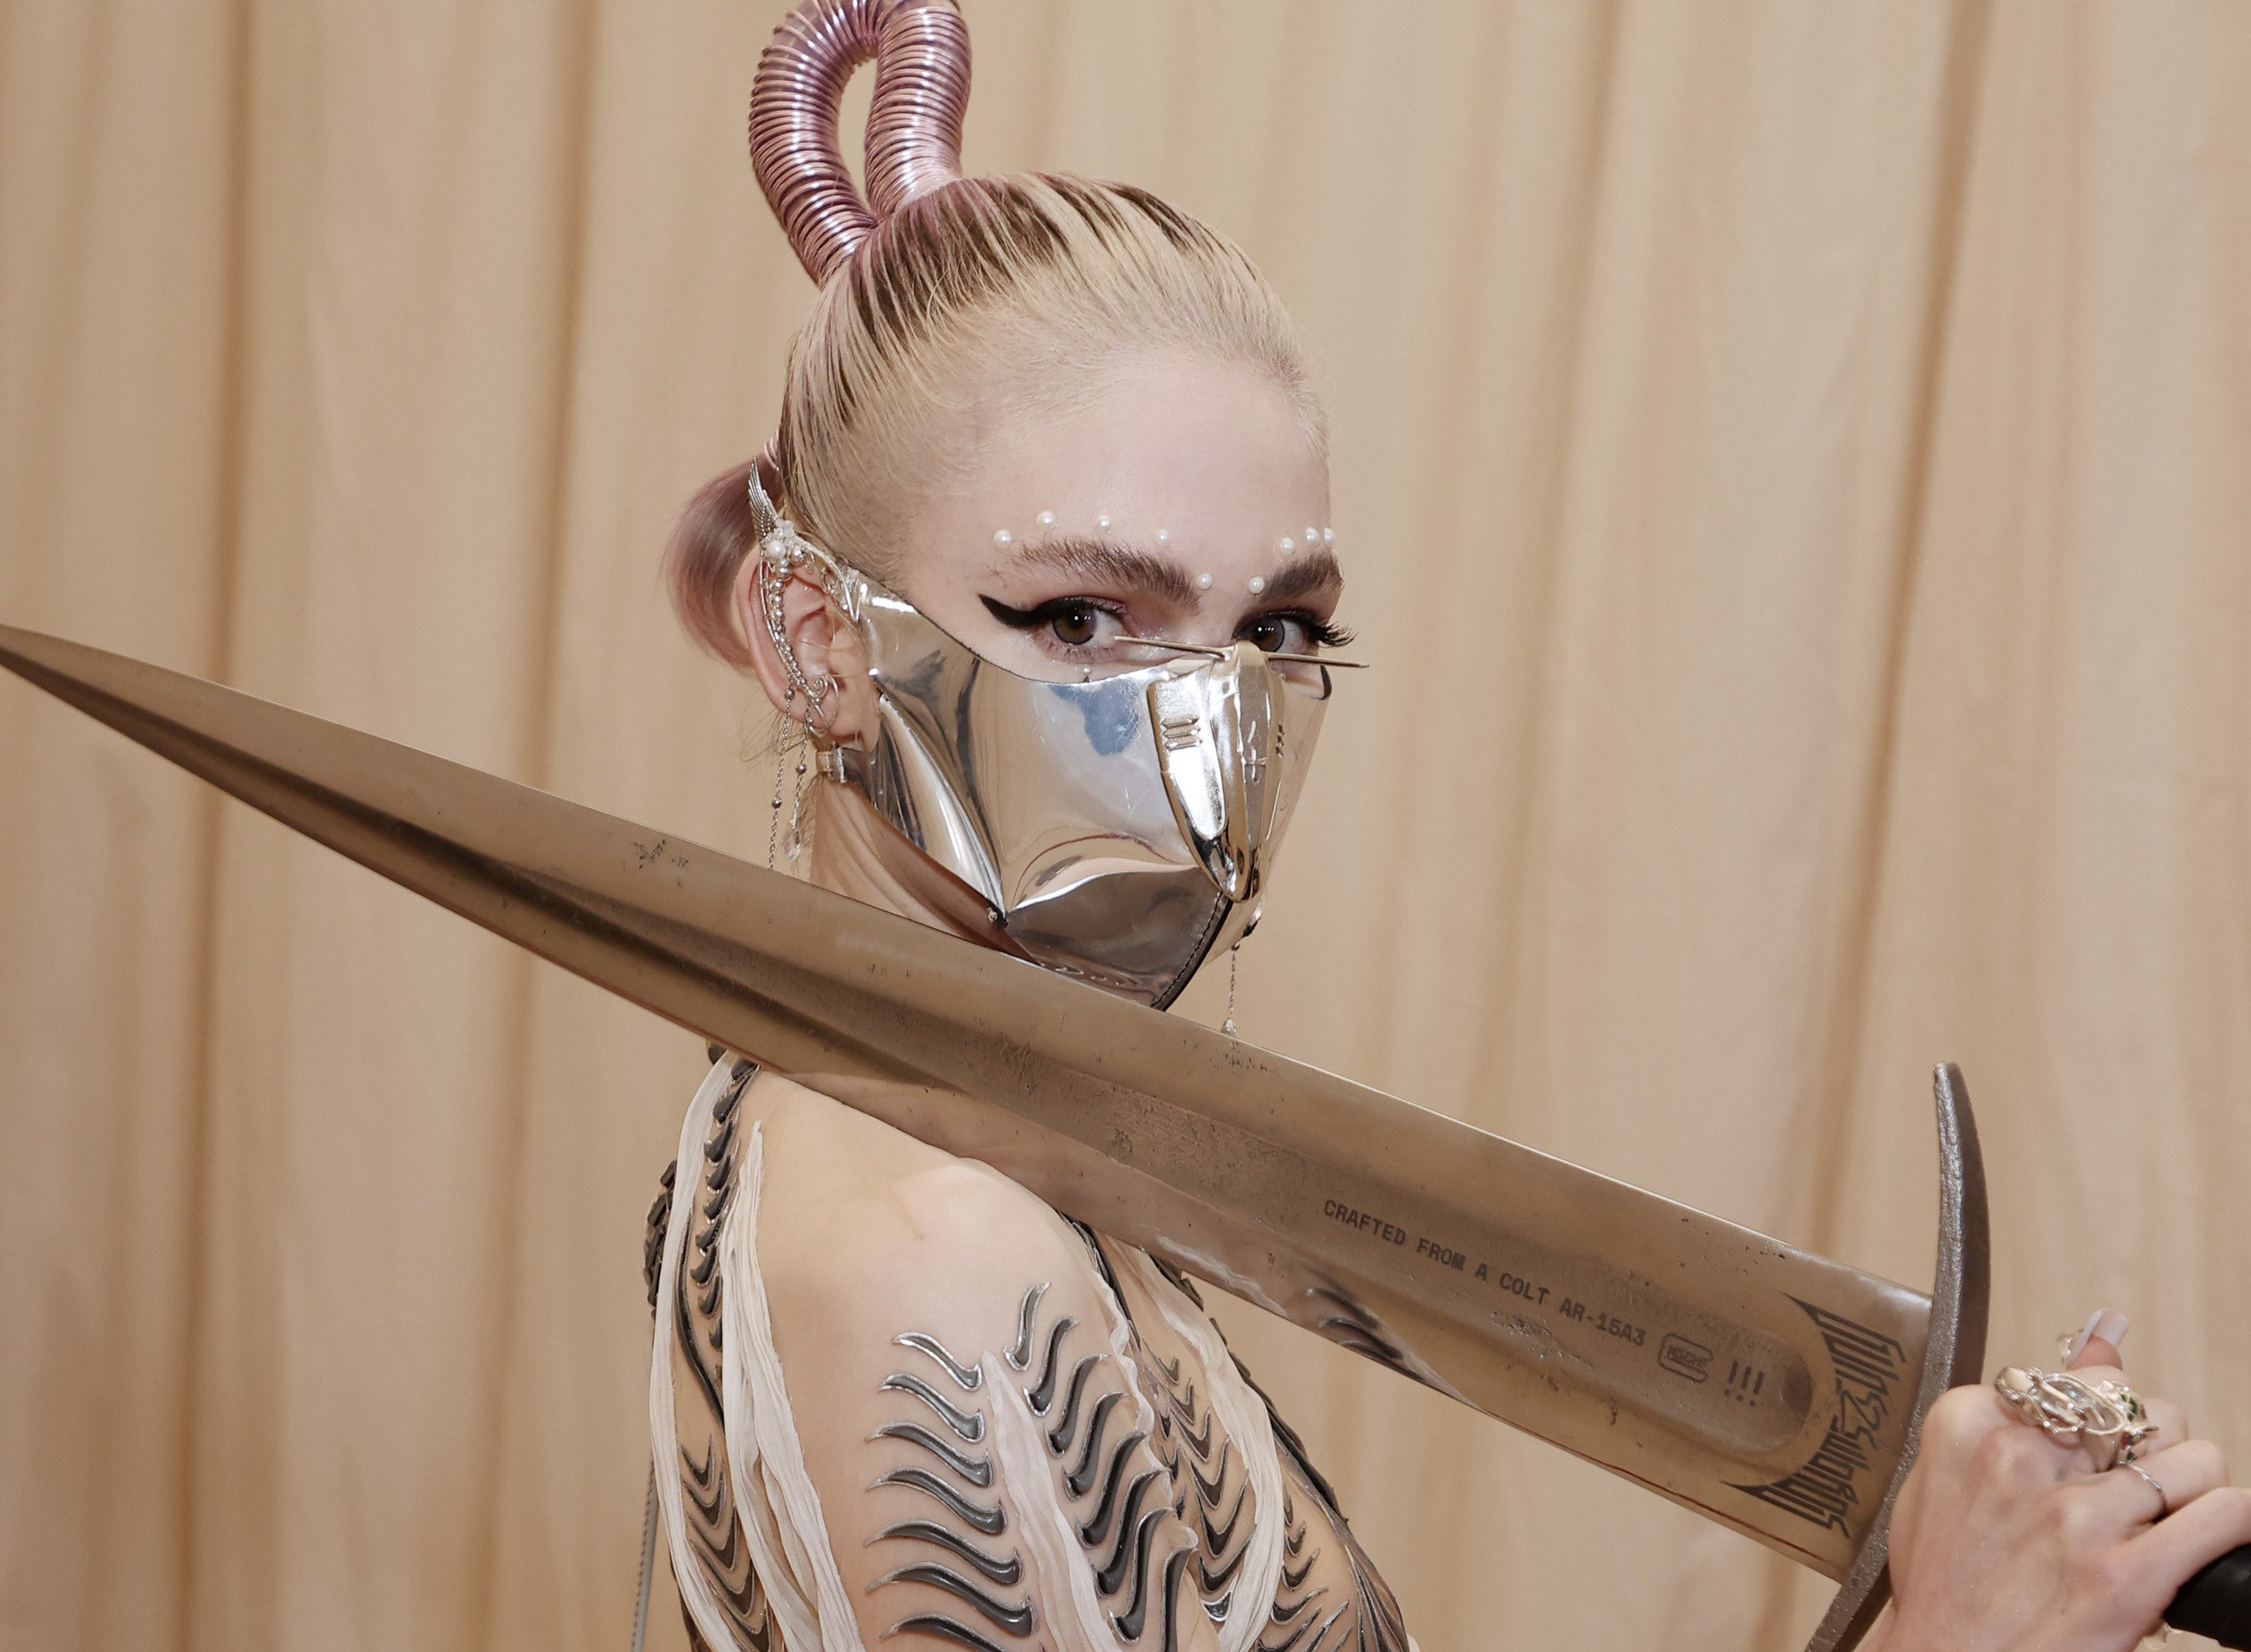 Grimes holds the sword, leaning it on her shoulder